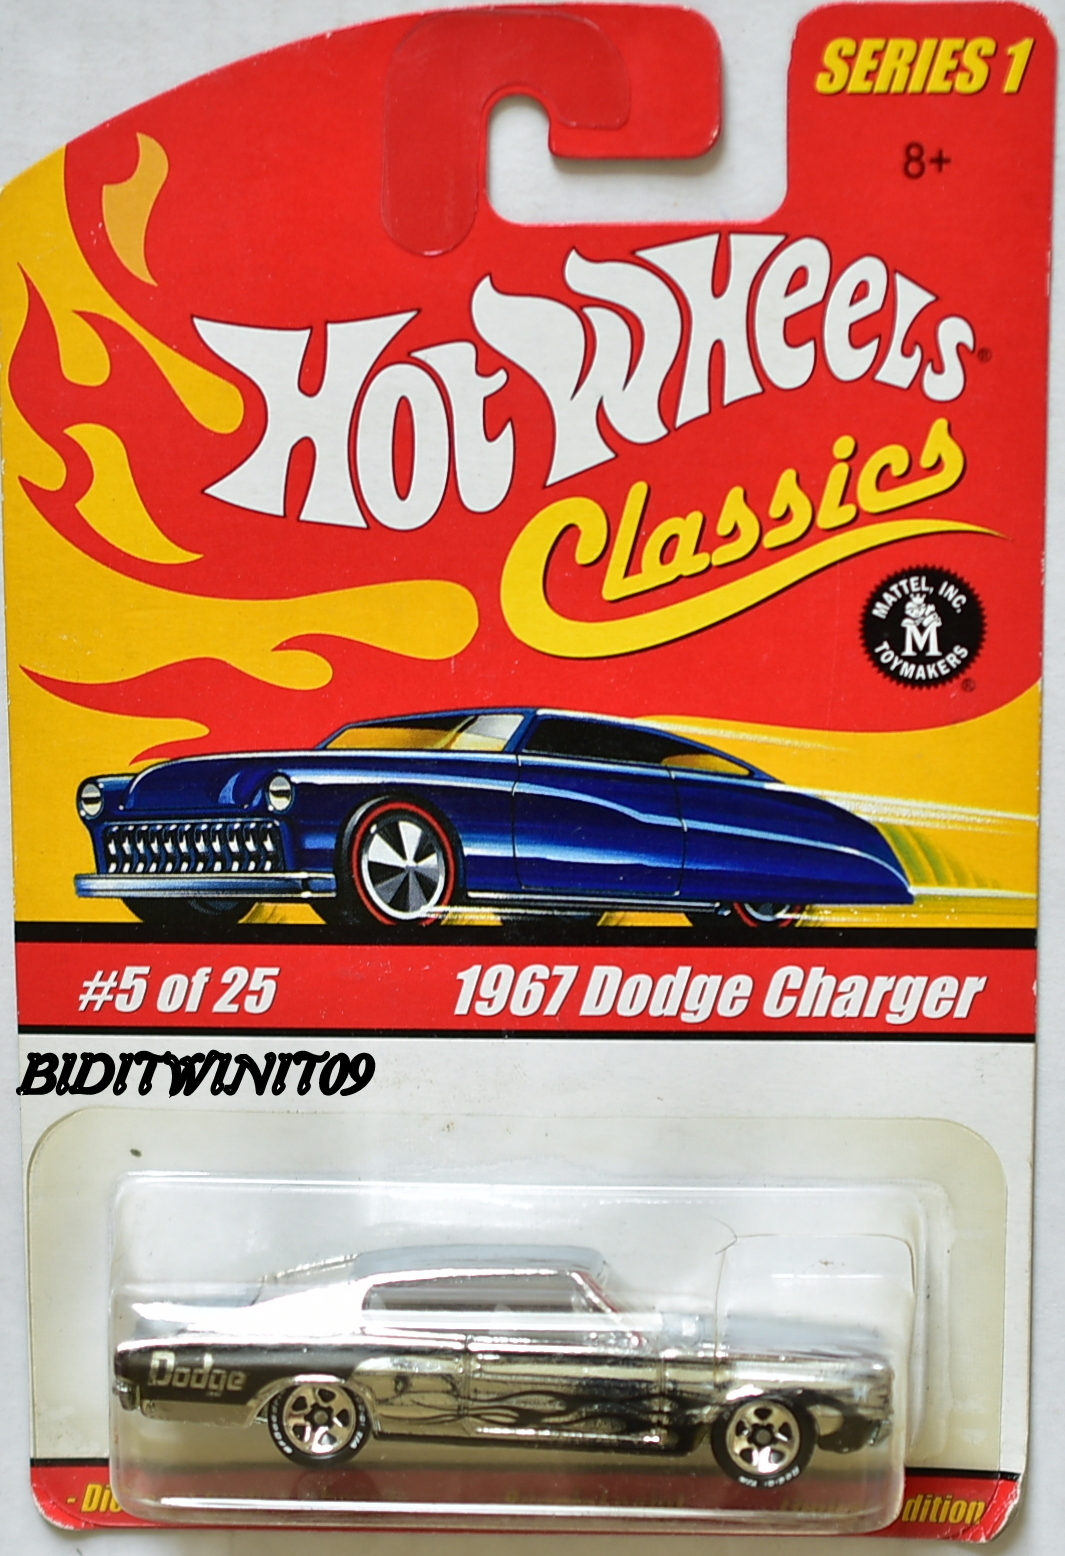 HOT WHEELS CLASSICS SERIES 1 #5/25 1967 DODGE CHARGER CHROME